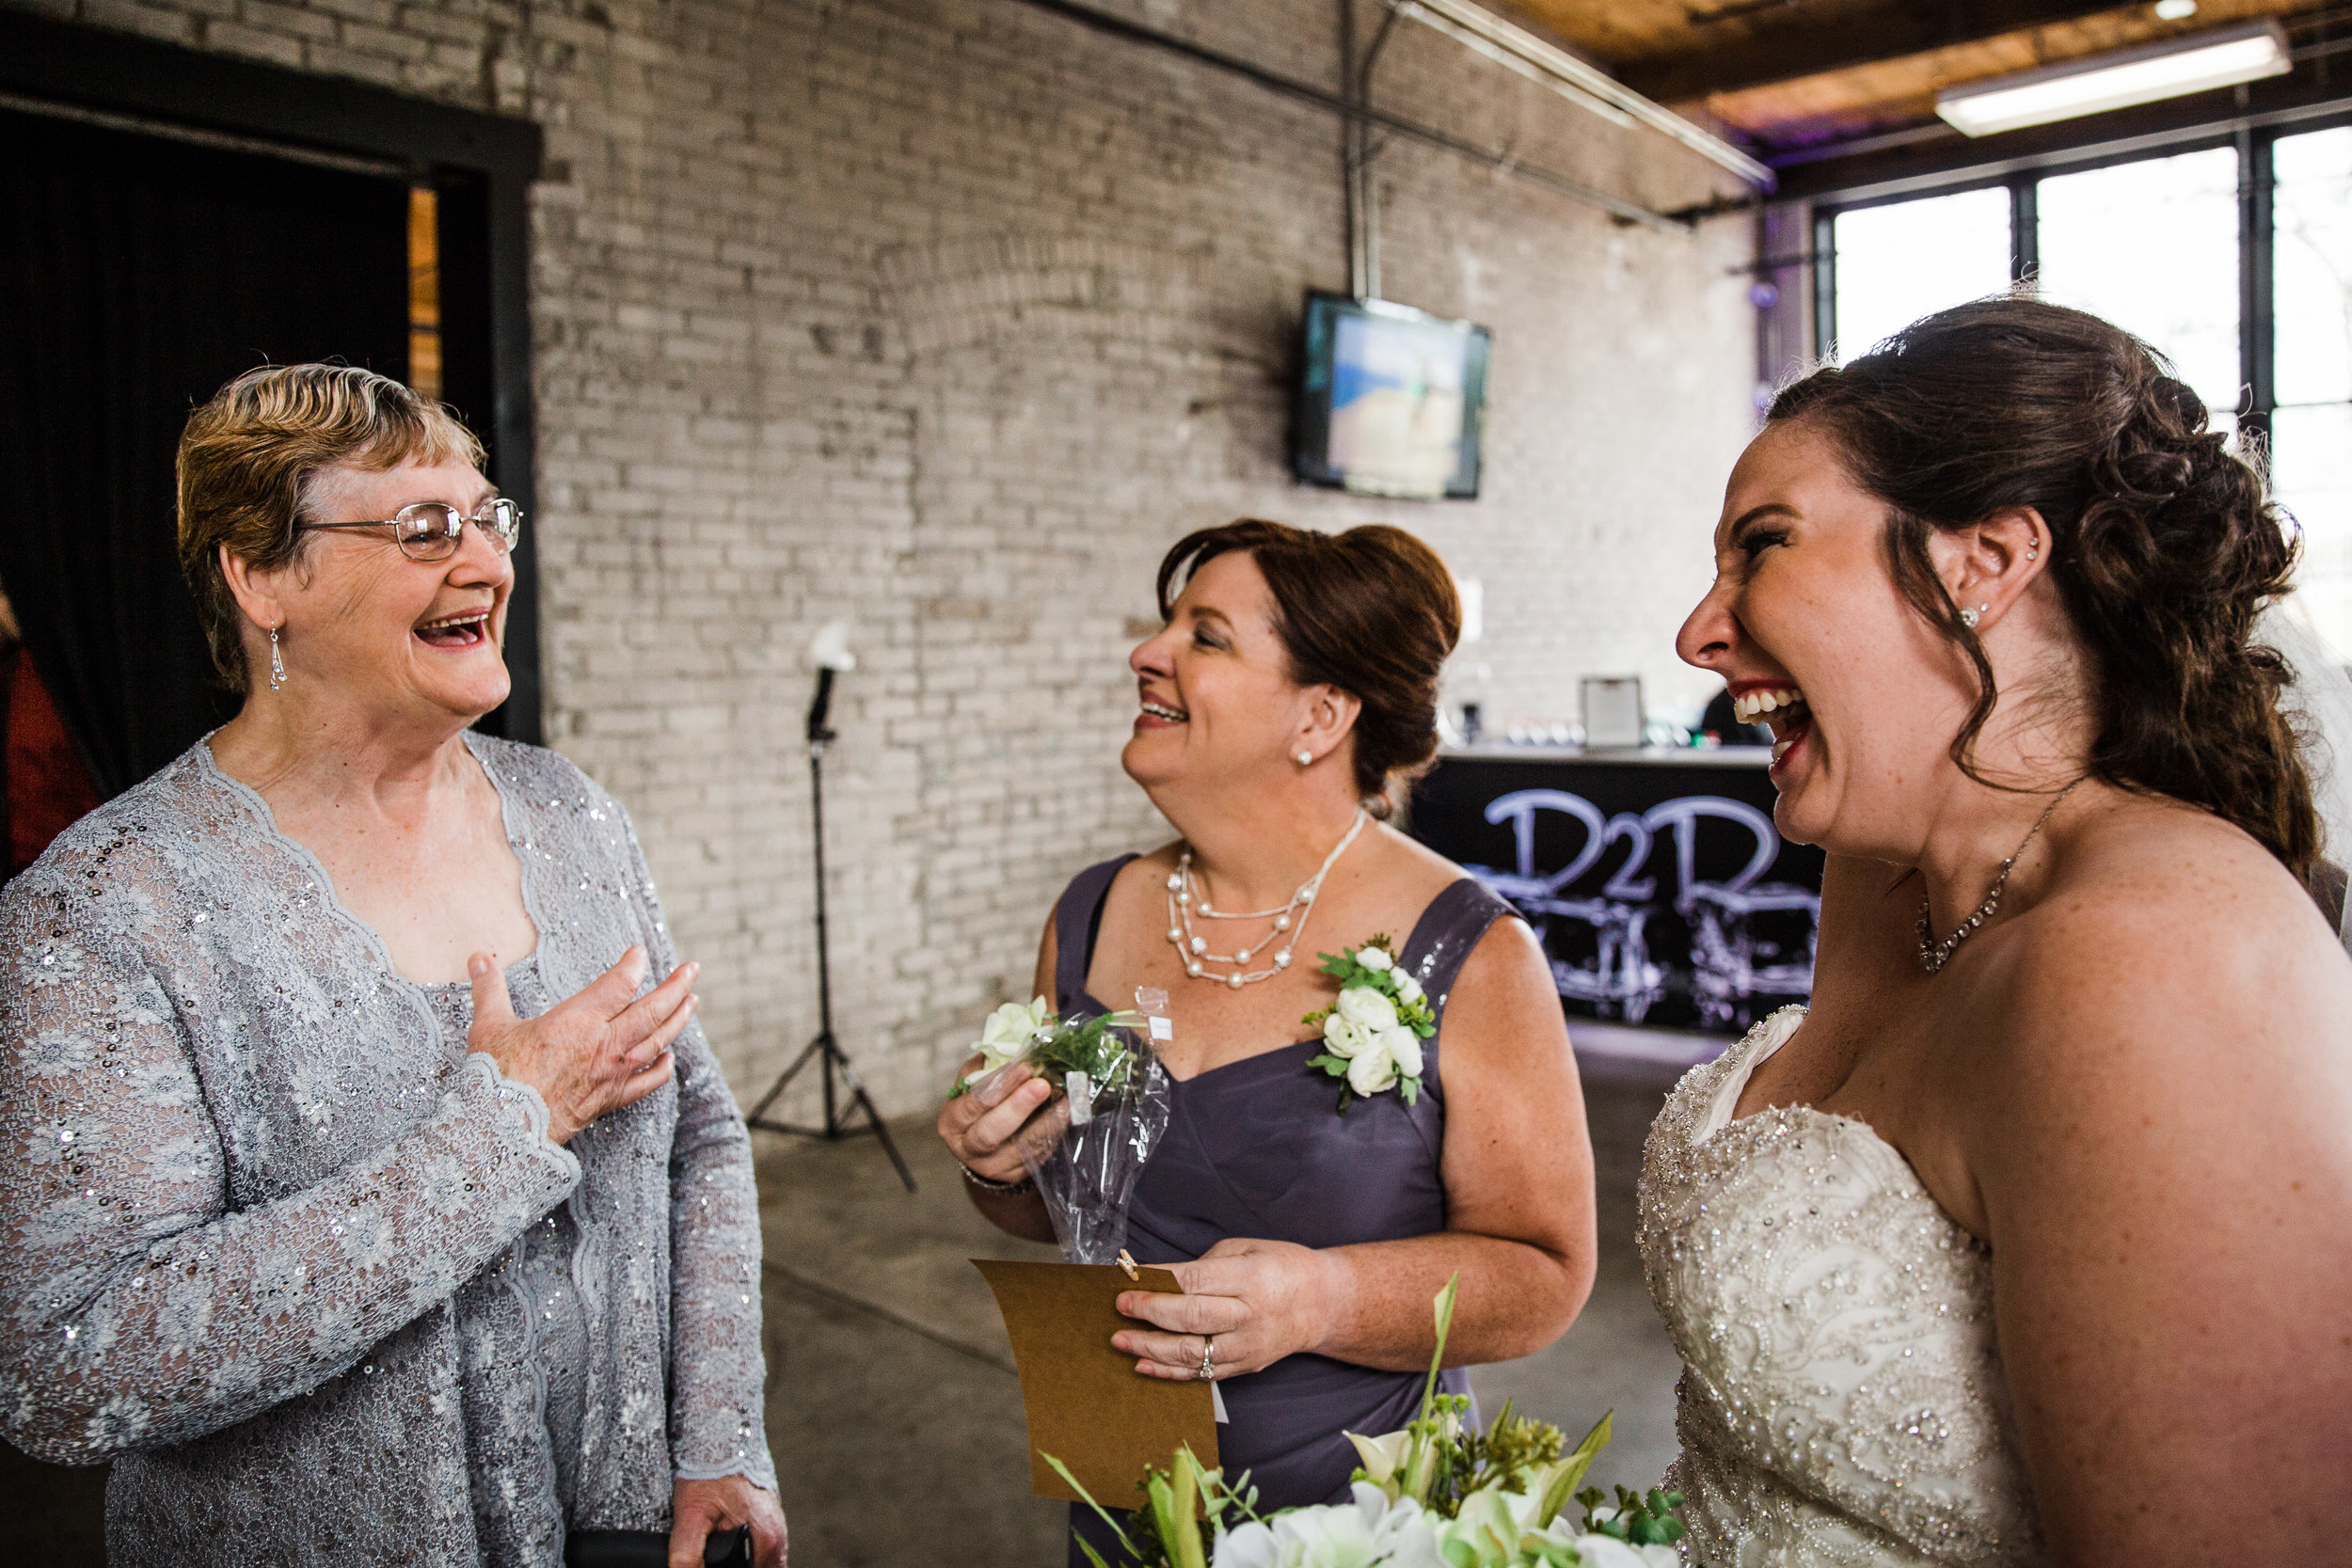 Michigan Wedding Reception - Bride Laughing with Mom and Grandma.jpg